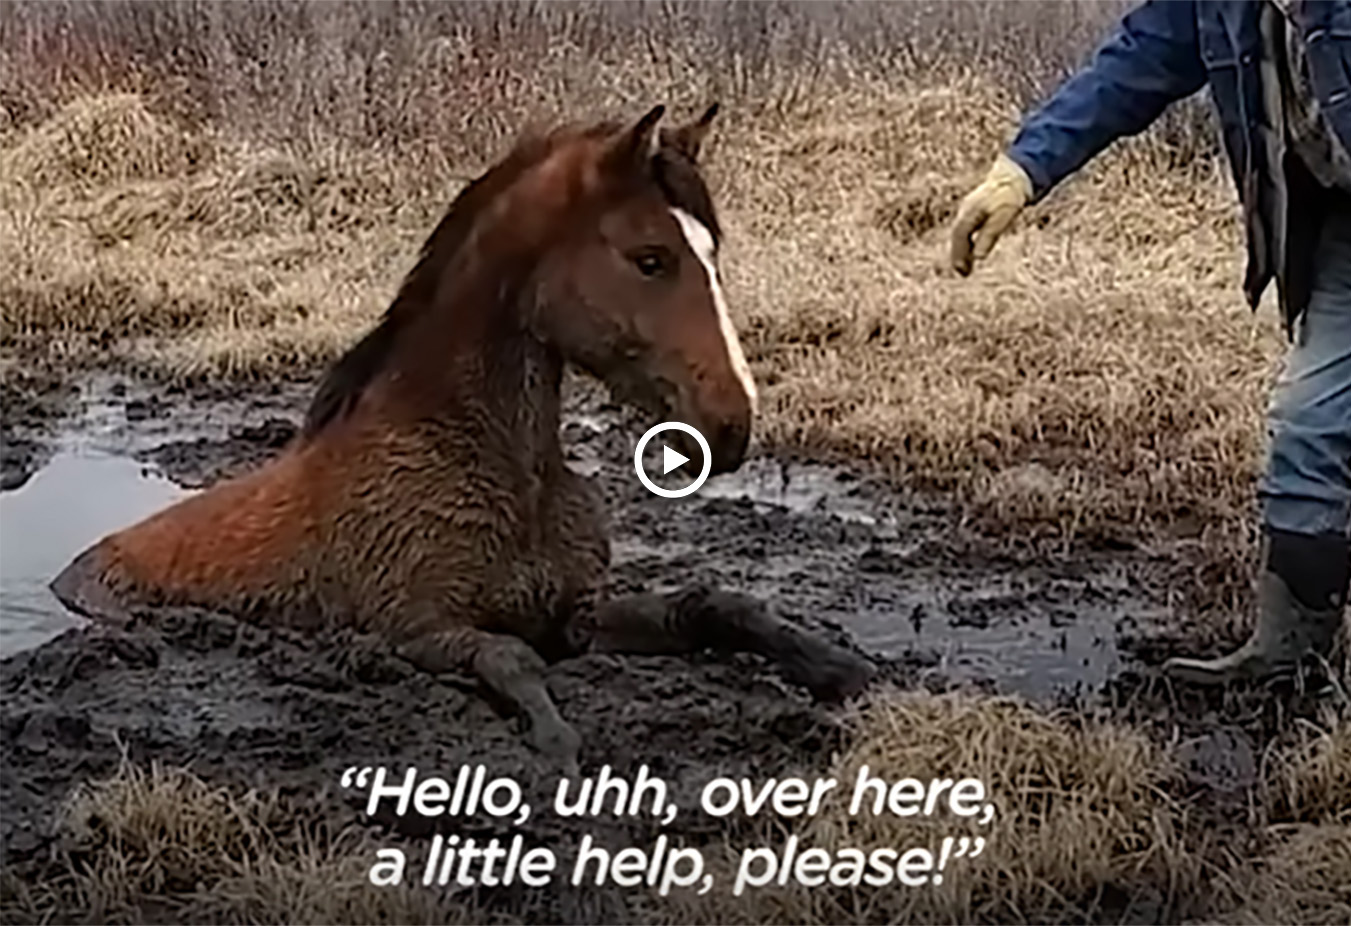 Wild Horse Stuck in the Mud Asks Kind Strangers For Help